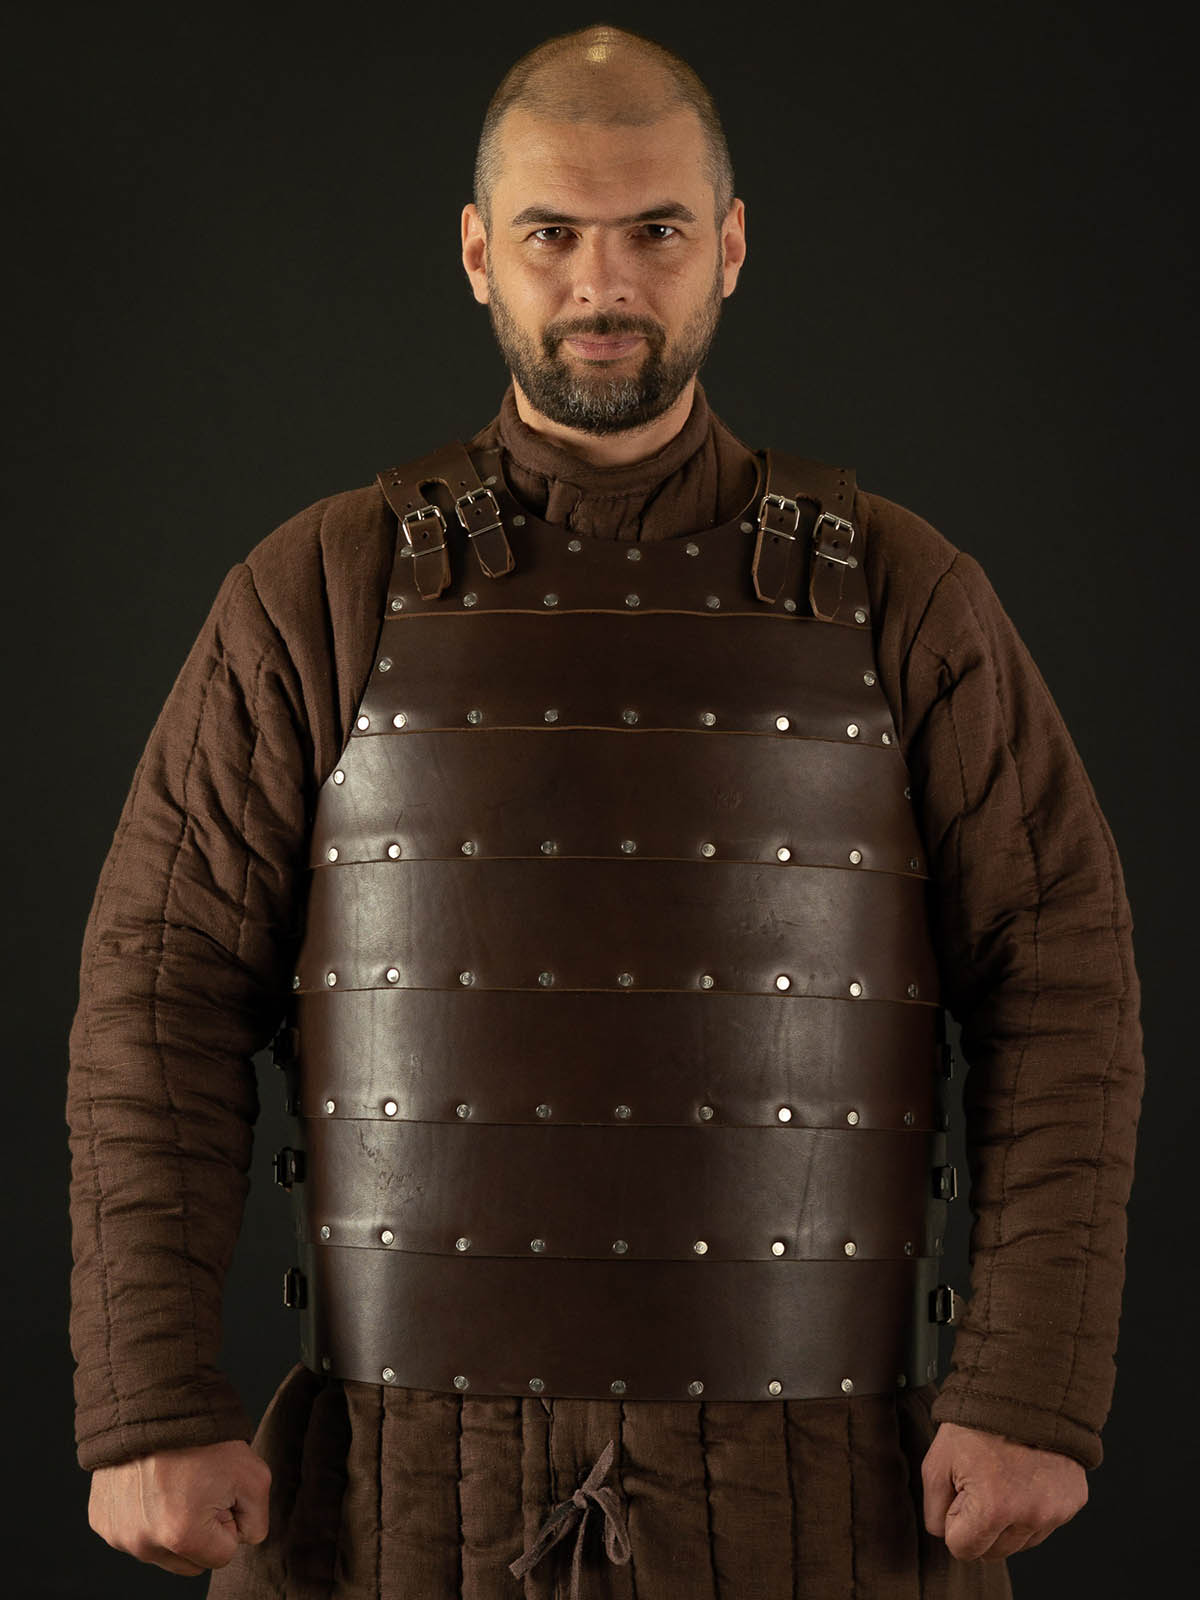 Be in style of the XIV century in leather brigandine!